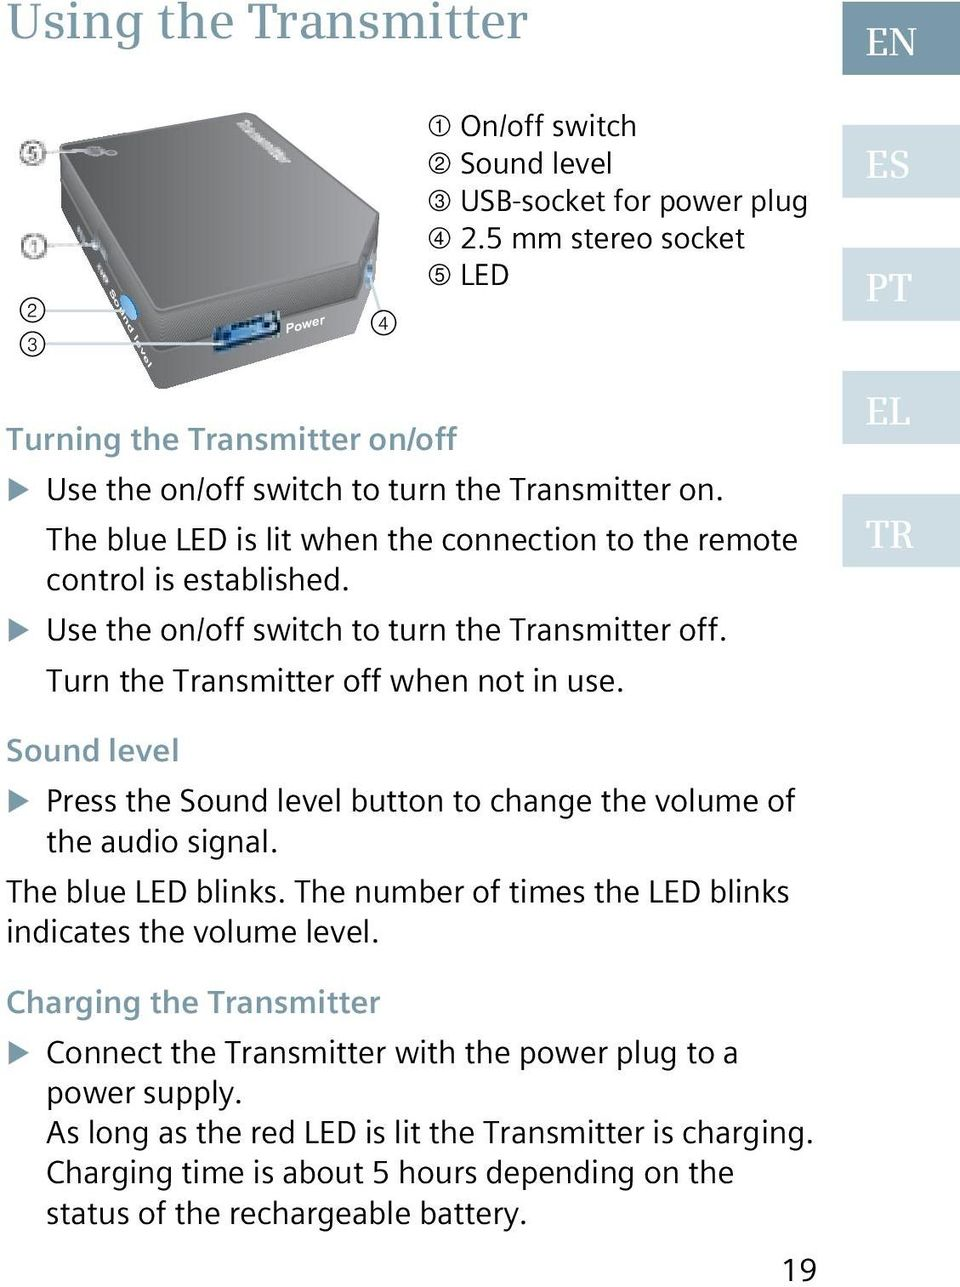 The blue LED is lit when the connection to the remote control is established. Use the on/off switch to turn the Transmitter off. Turn the Transmitter off when not in use.